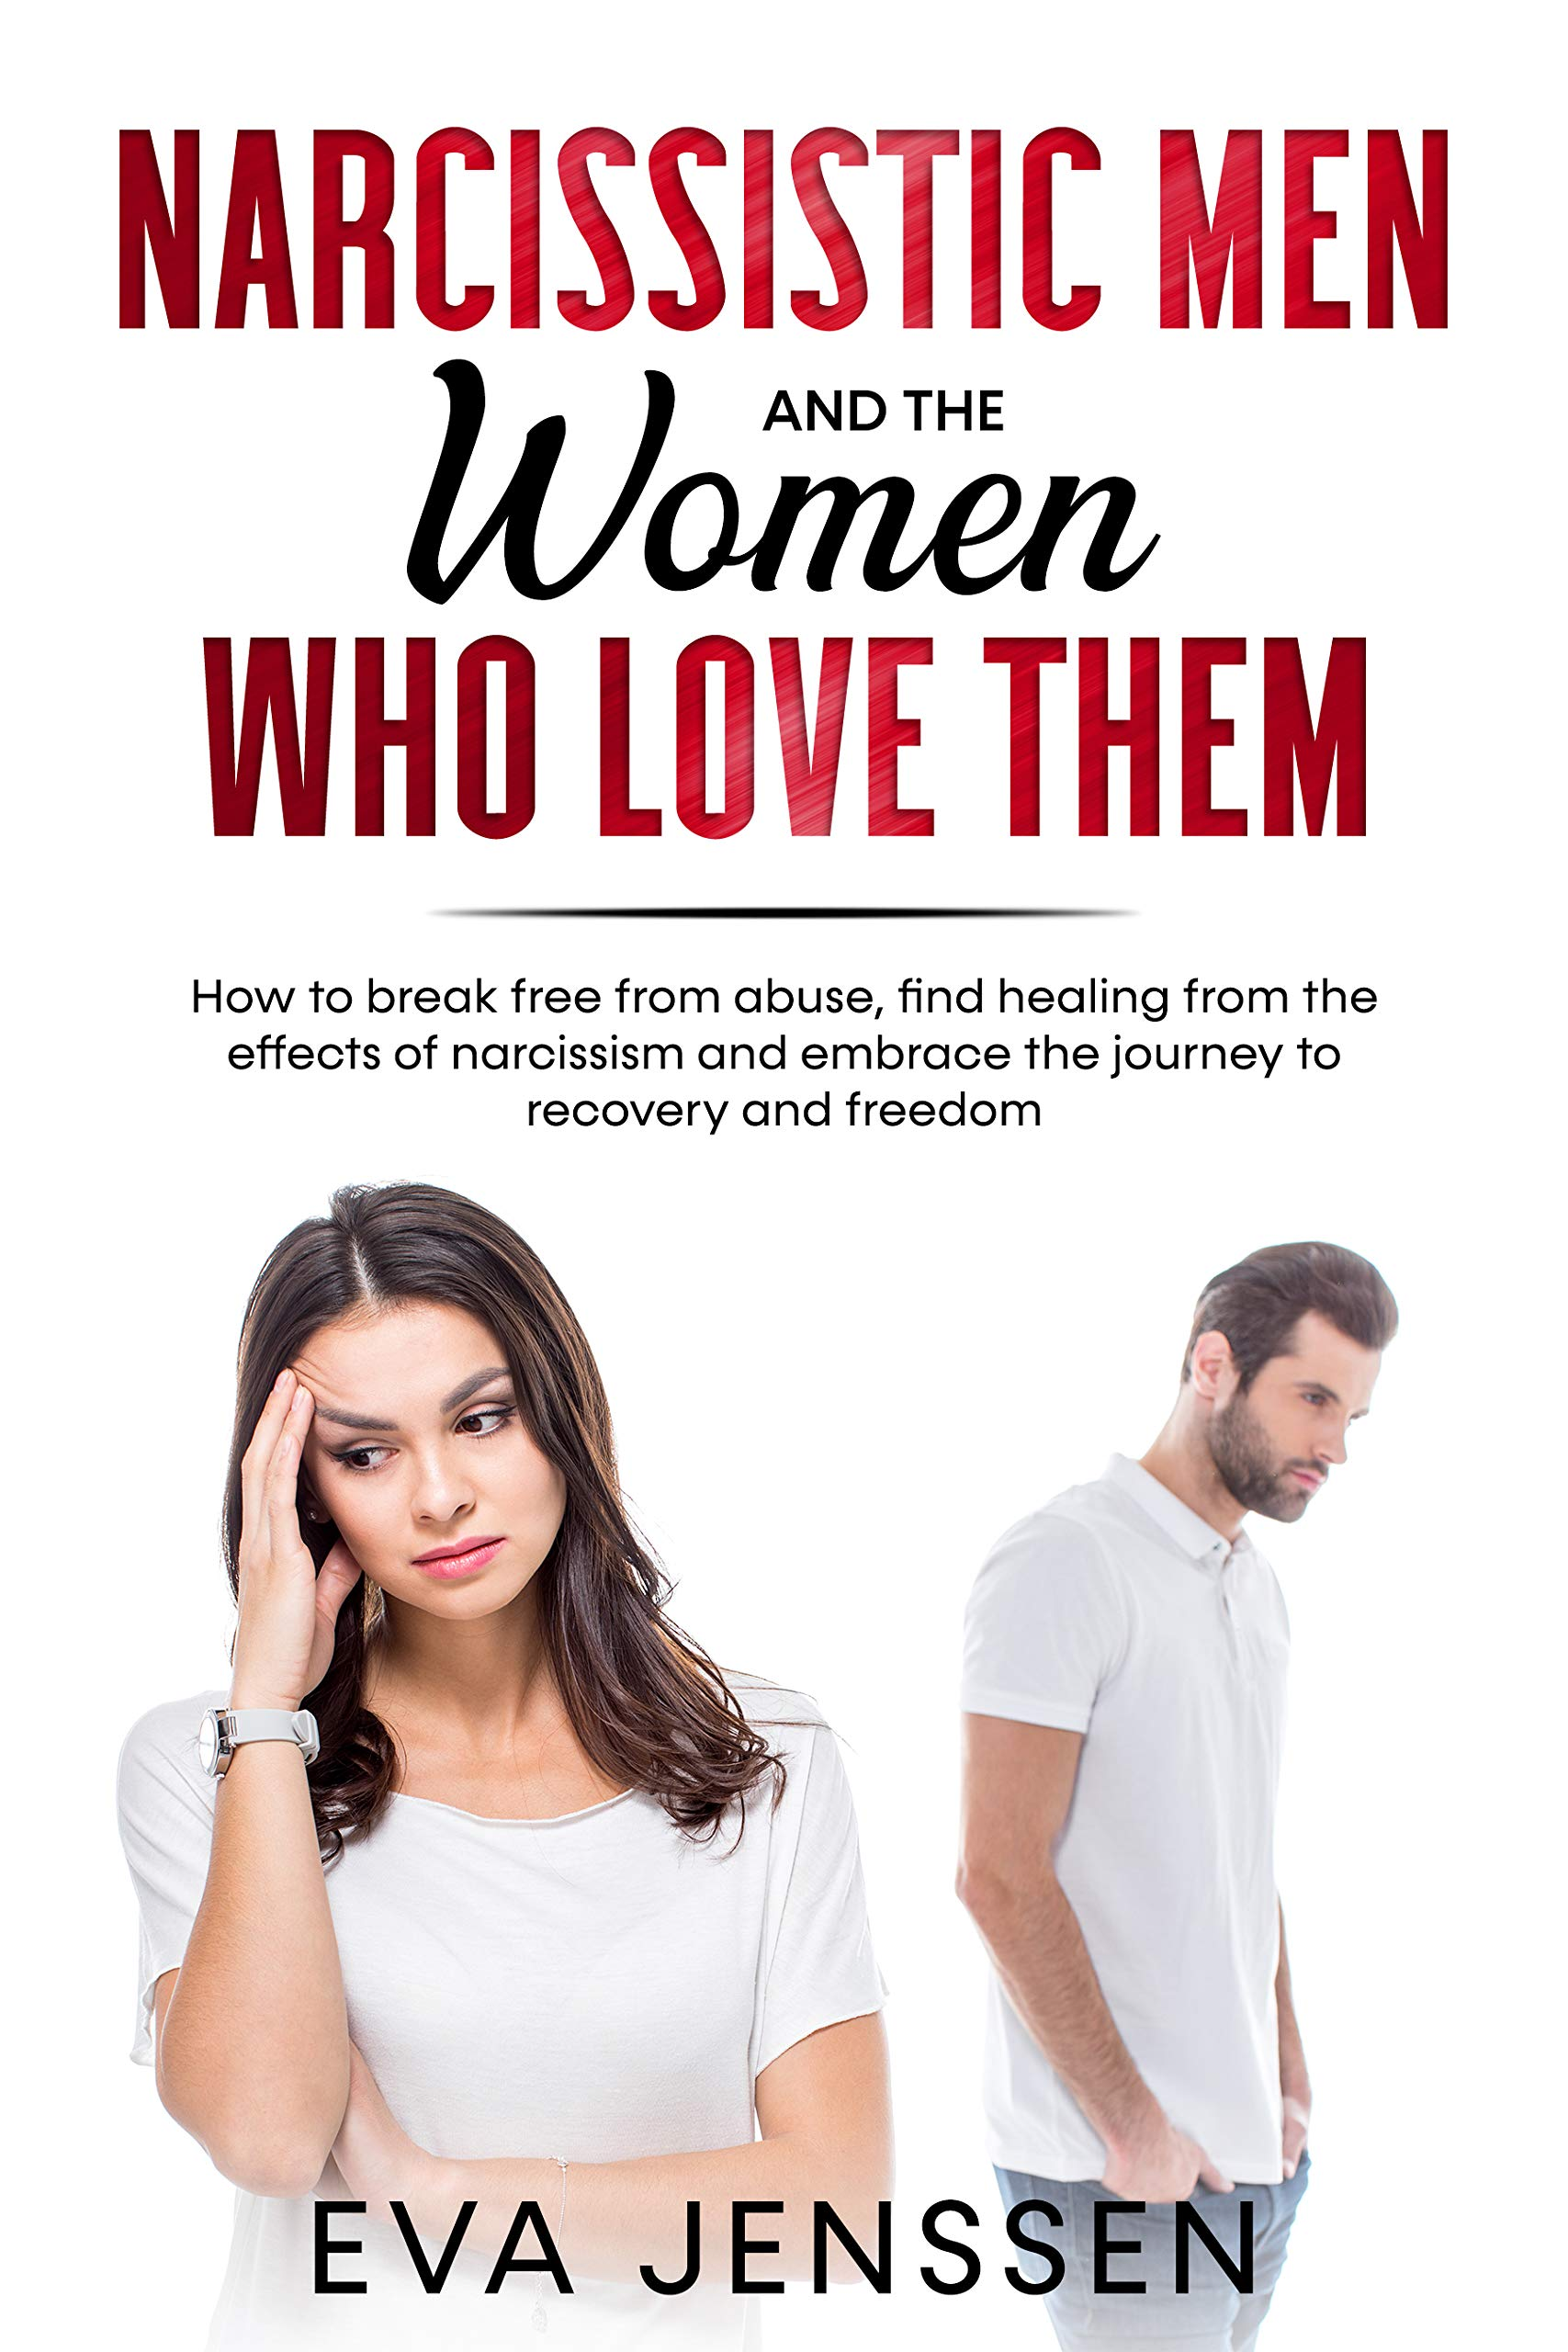 Narcissistic Men and the Women Who Love Them: How to break free from abuse, find healing from the effects of narcissism and embrace the journey to recovery and freedom